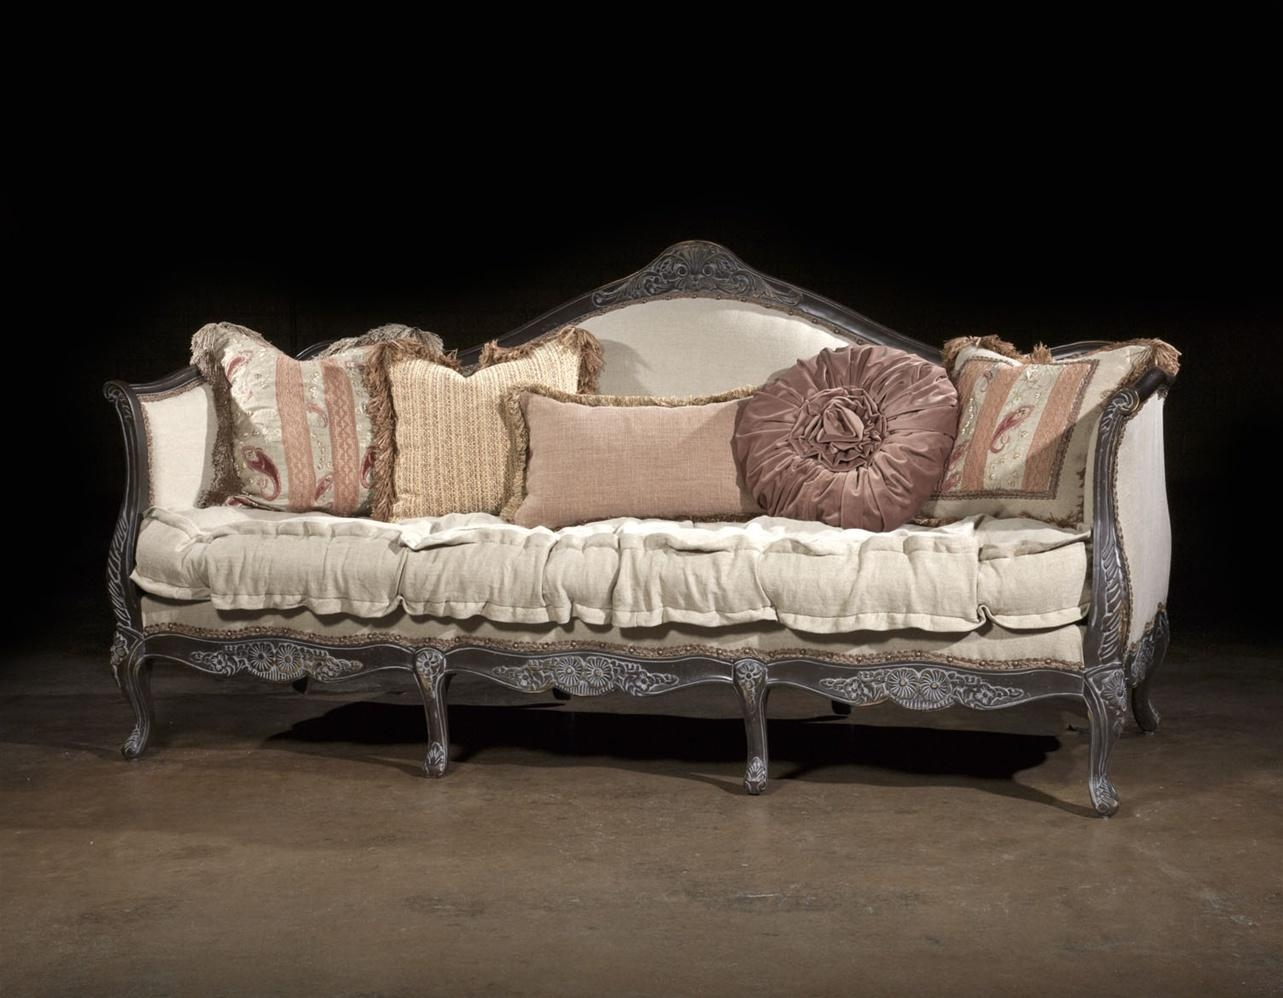 Sofas Center : French Sofa Chairs Country Sofas Pinterest With Country Sofas And Chairs (View 11 of 20)